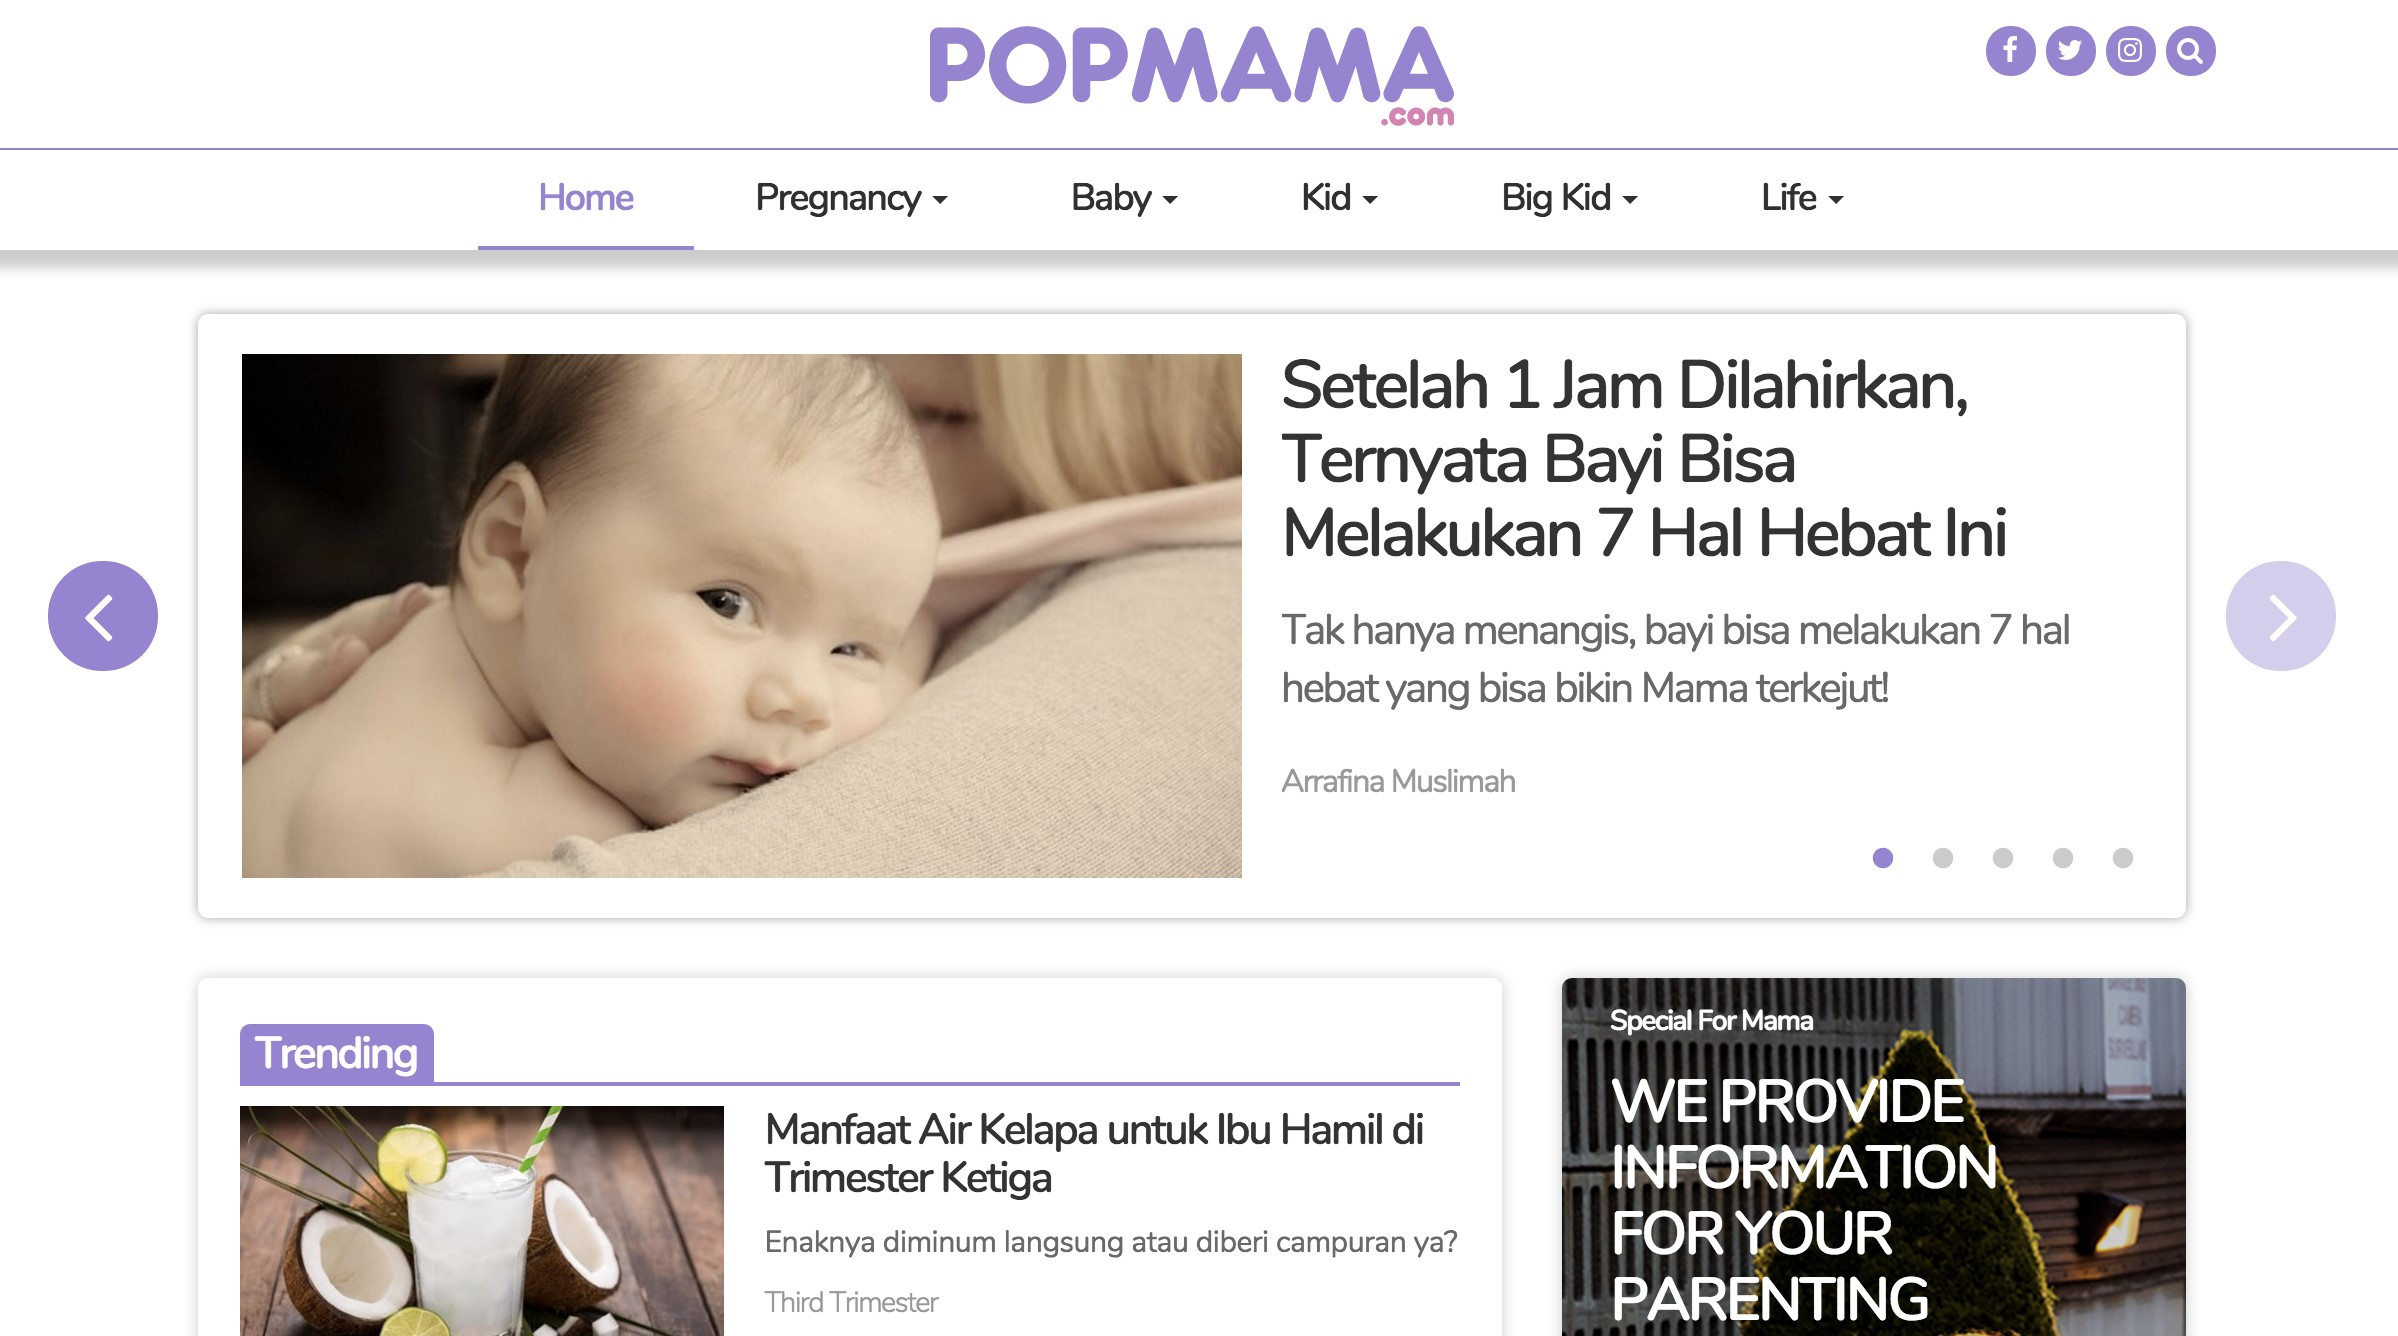 IDN Media Launched Popmama.com, a Parenting Guide for Millennial Mama